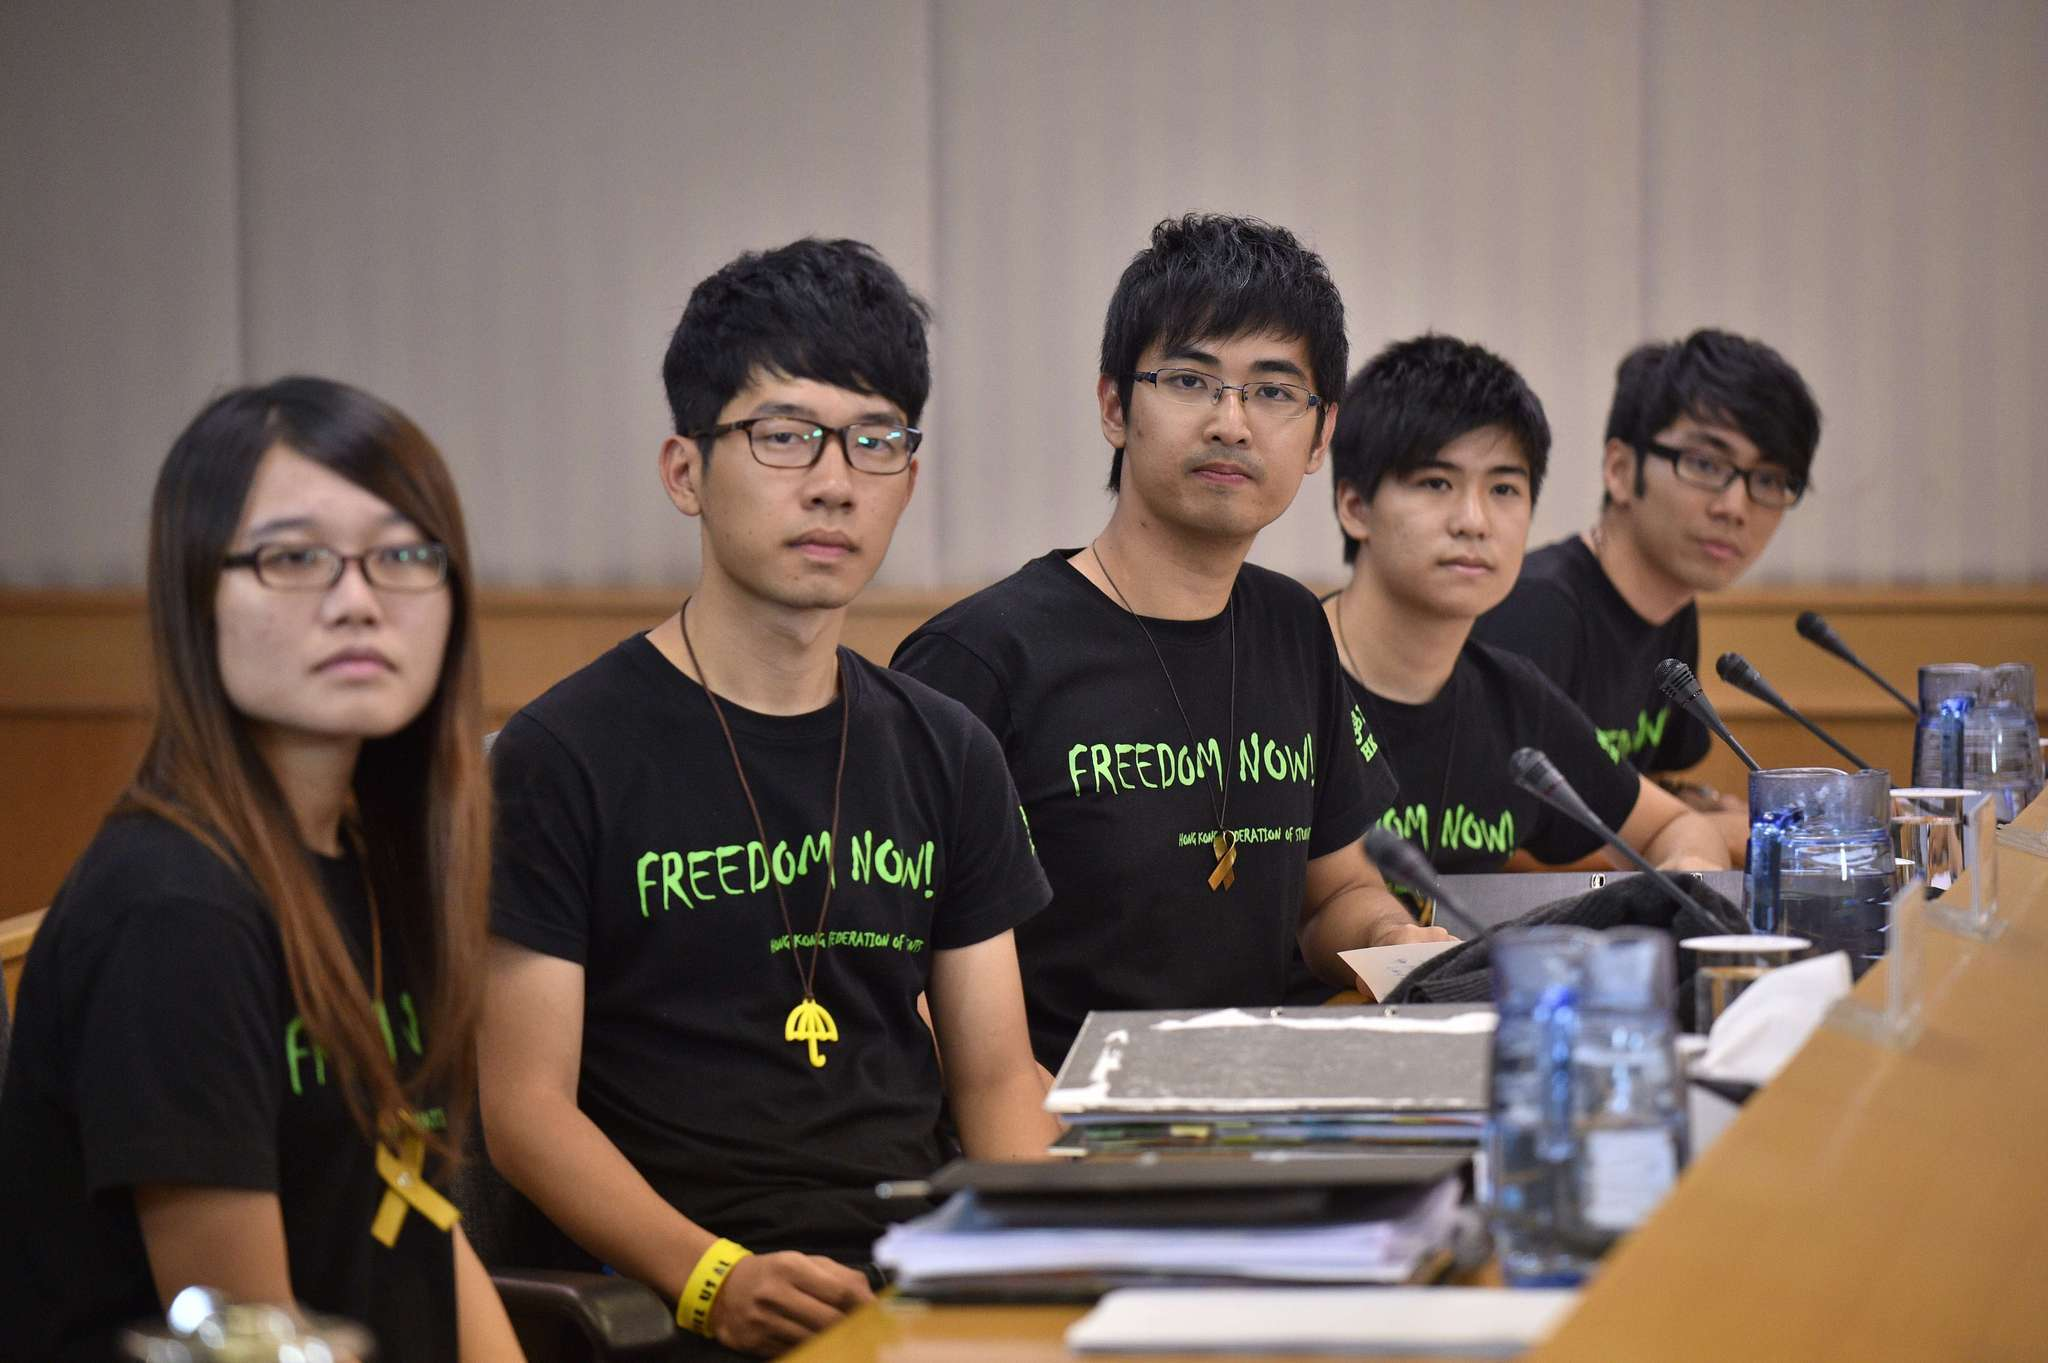 Hong Kong student protest leaders seek talks with Beijing officials